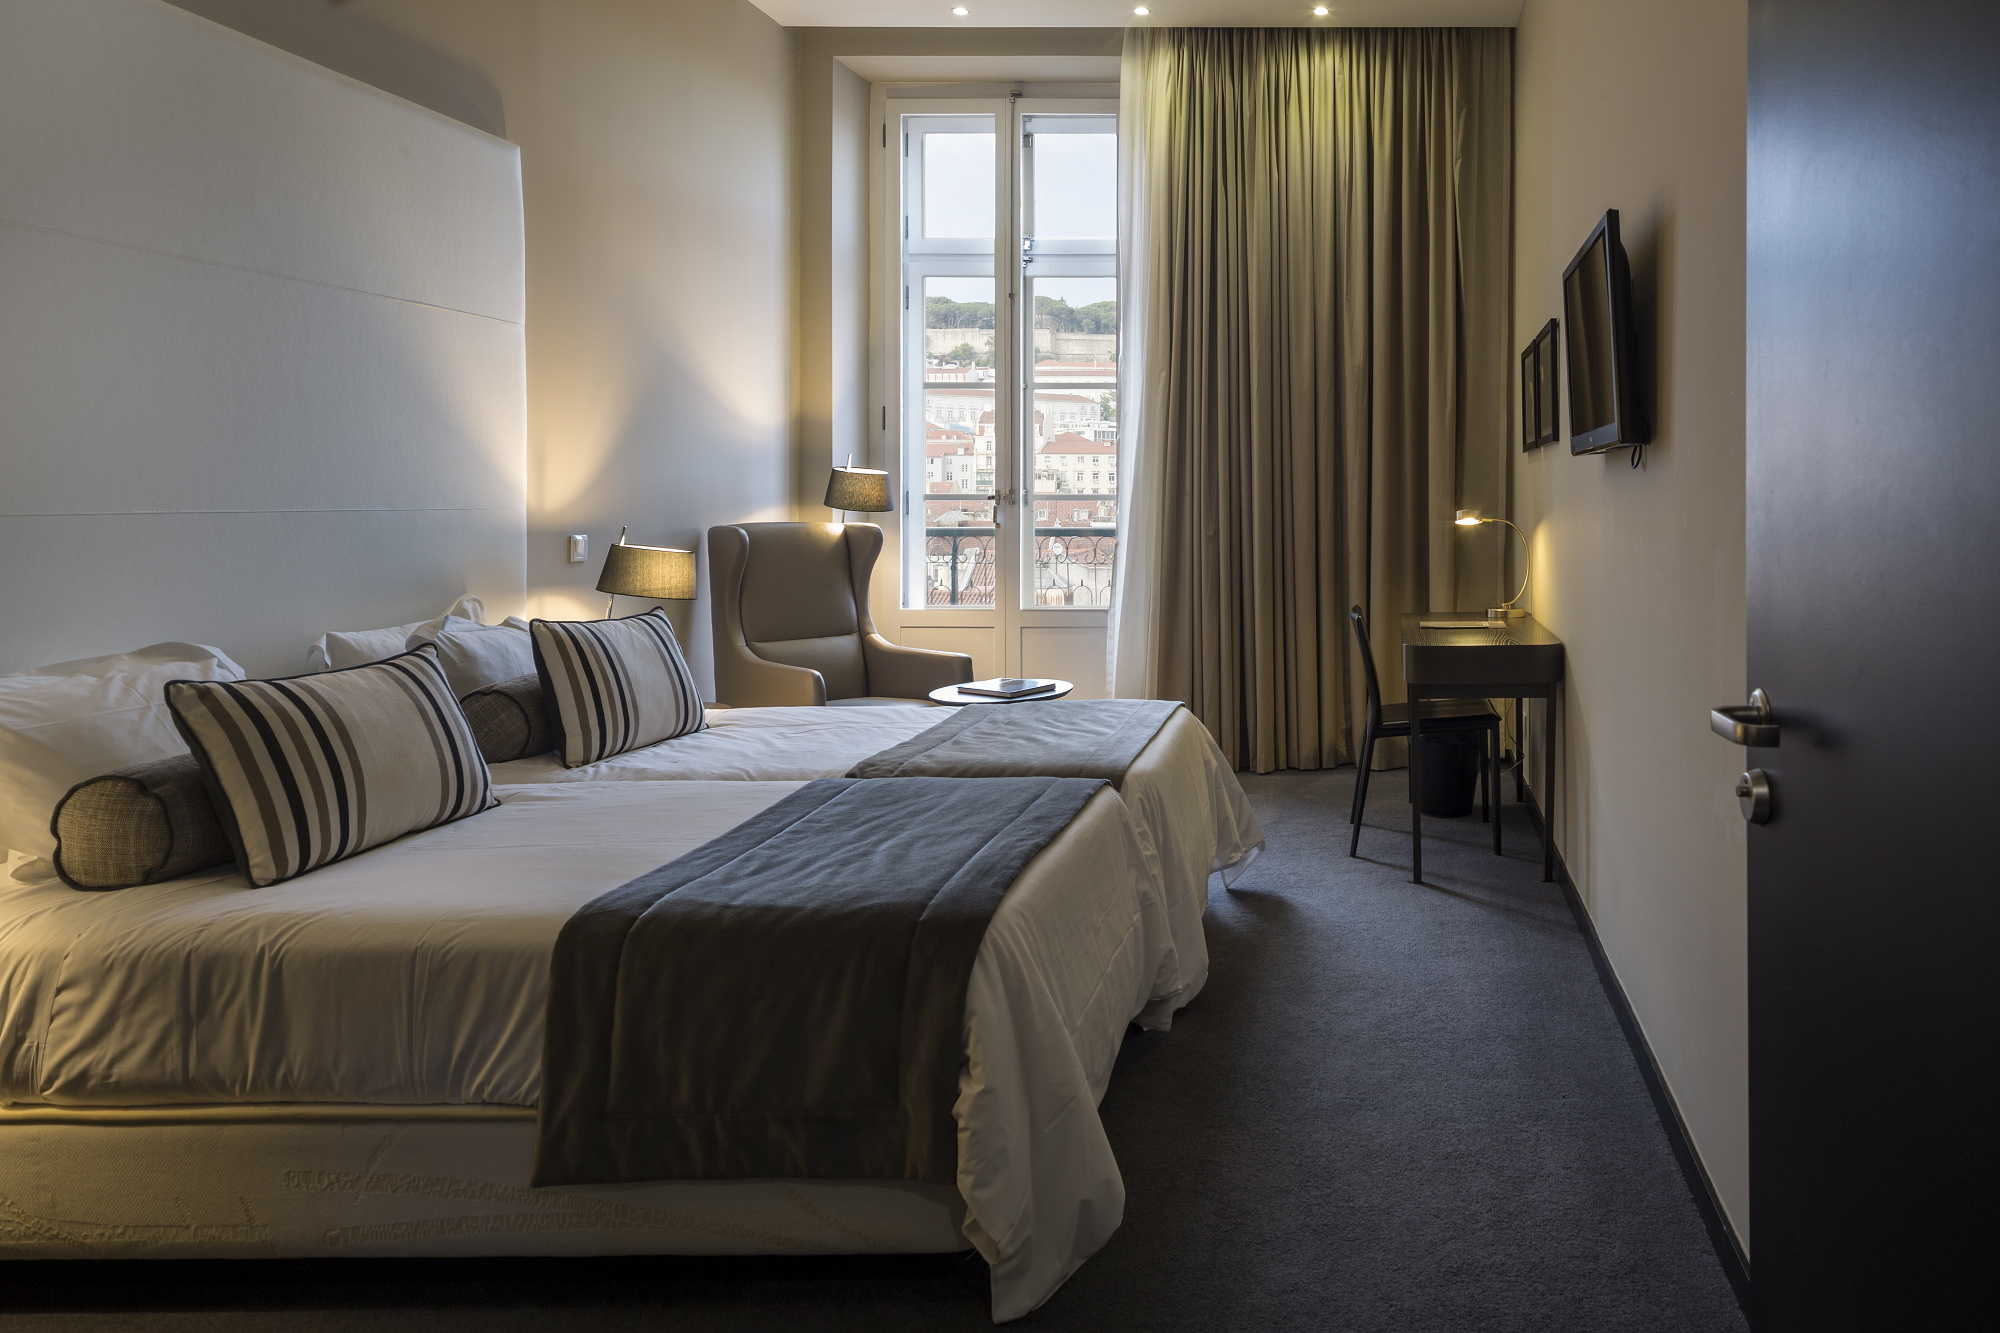 The best hotels in Chiado